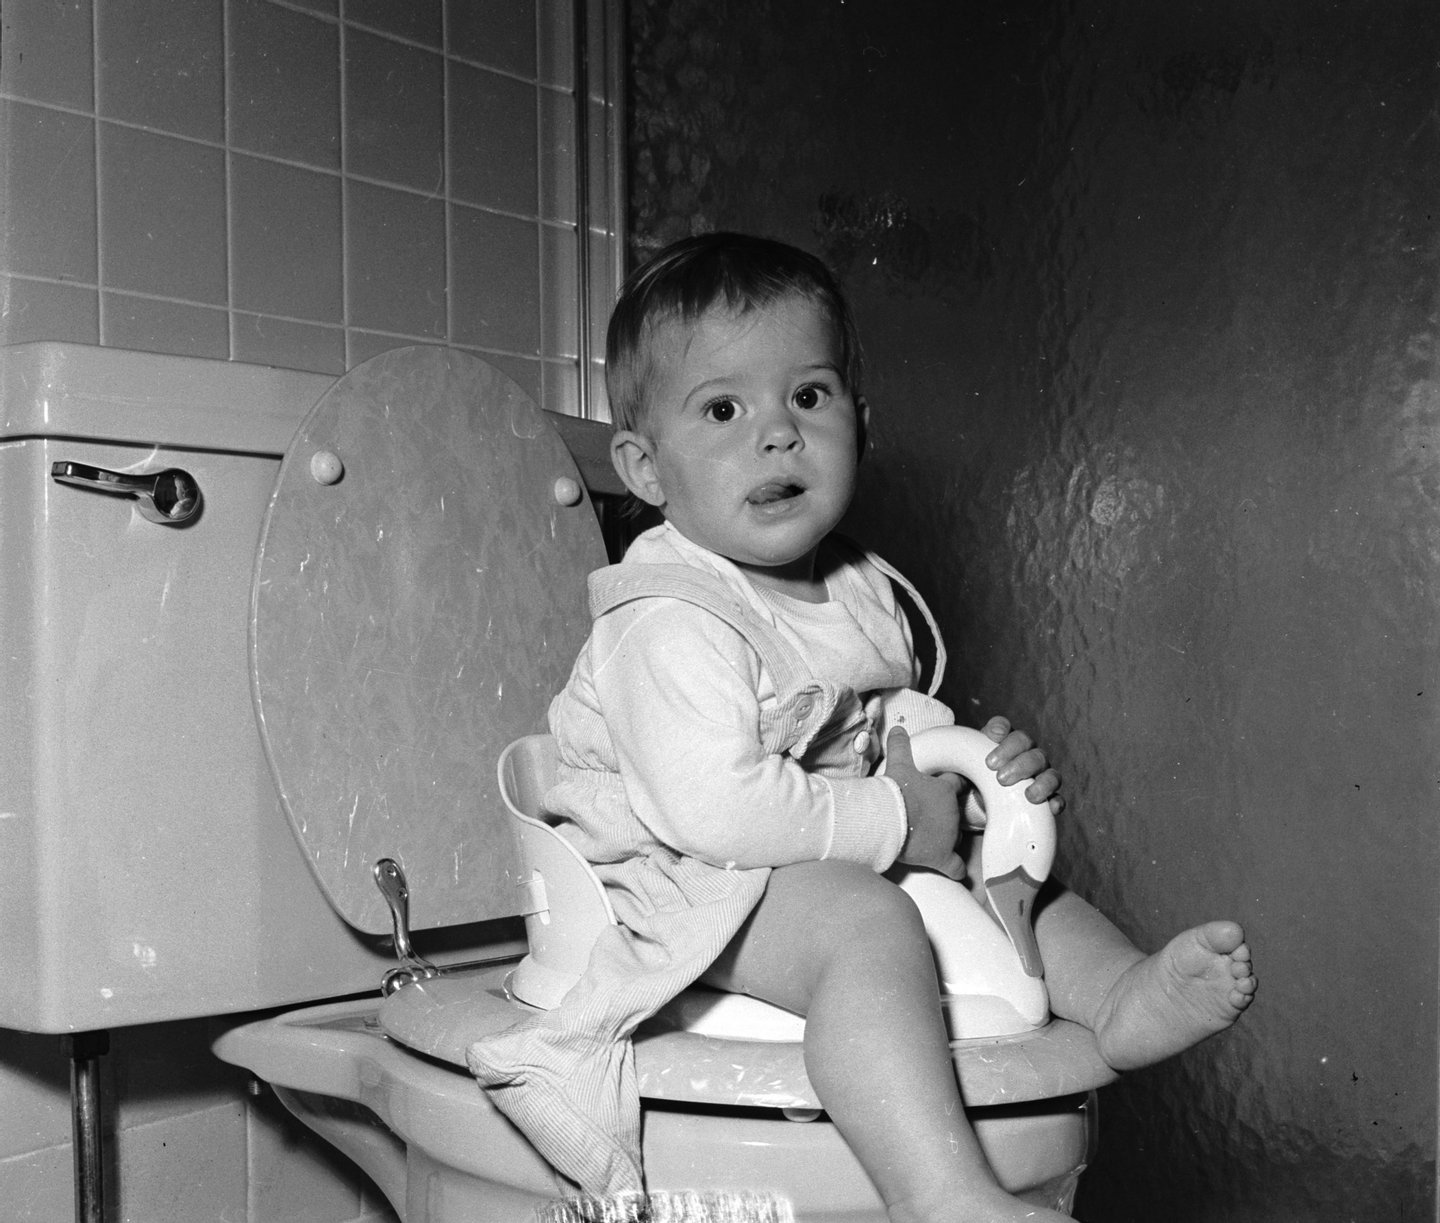 circa 1950:  A one year old learns to use the lavatory with her own special toilet seat.  (Photo by Lloyd Yearwood/Three Lions/Getty Images)